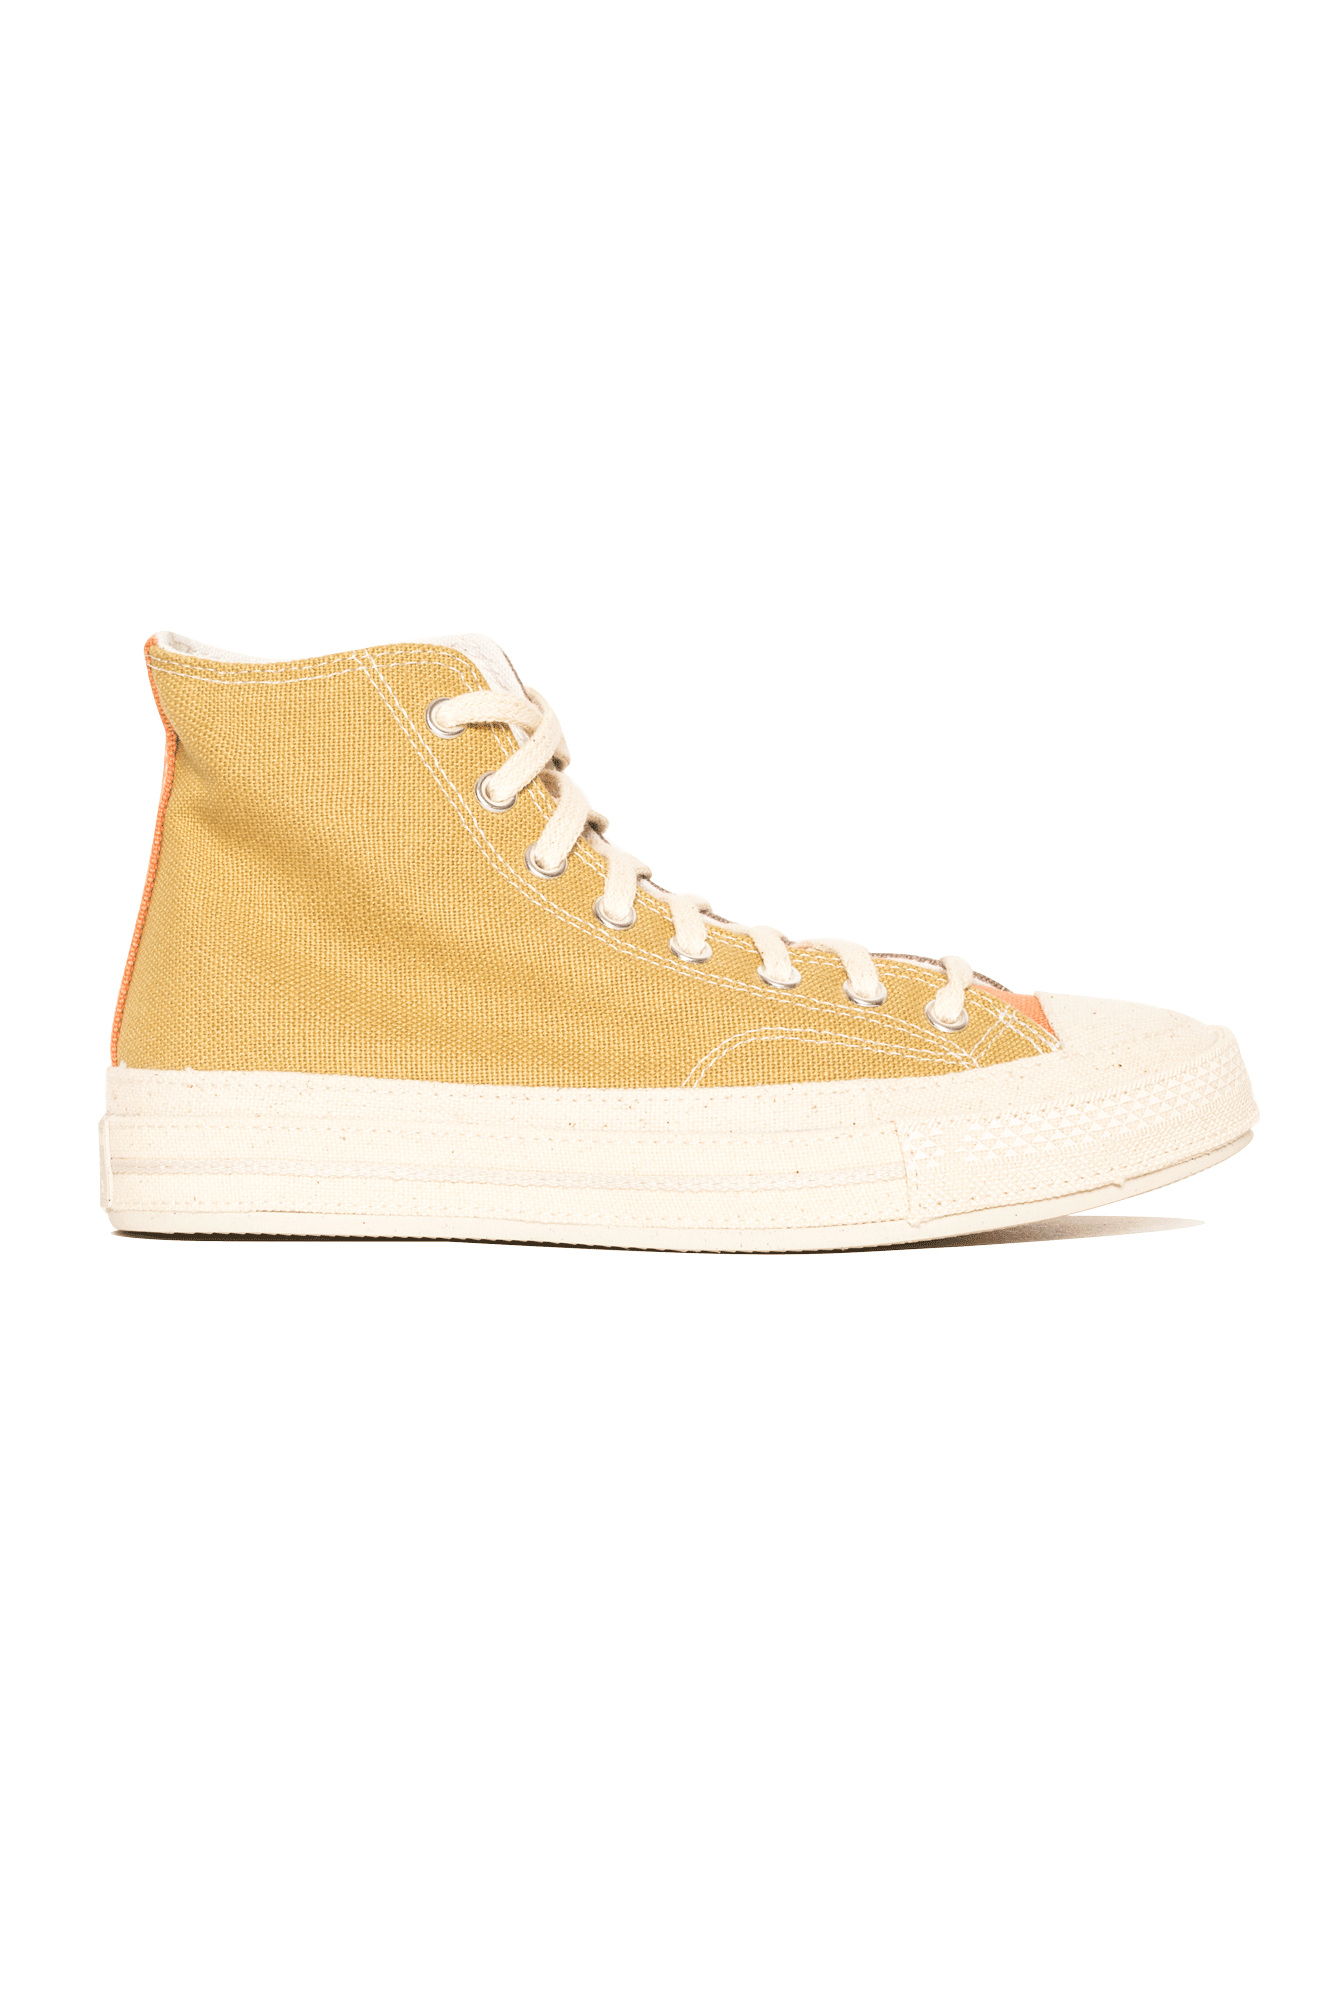 Chuck 70 HI Tri Panel Renew Multicolore